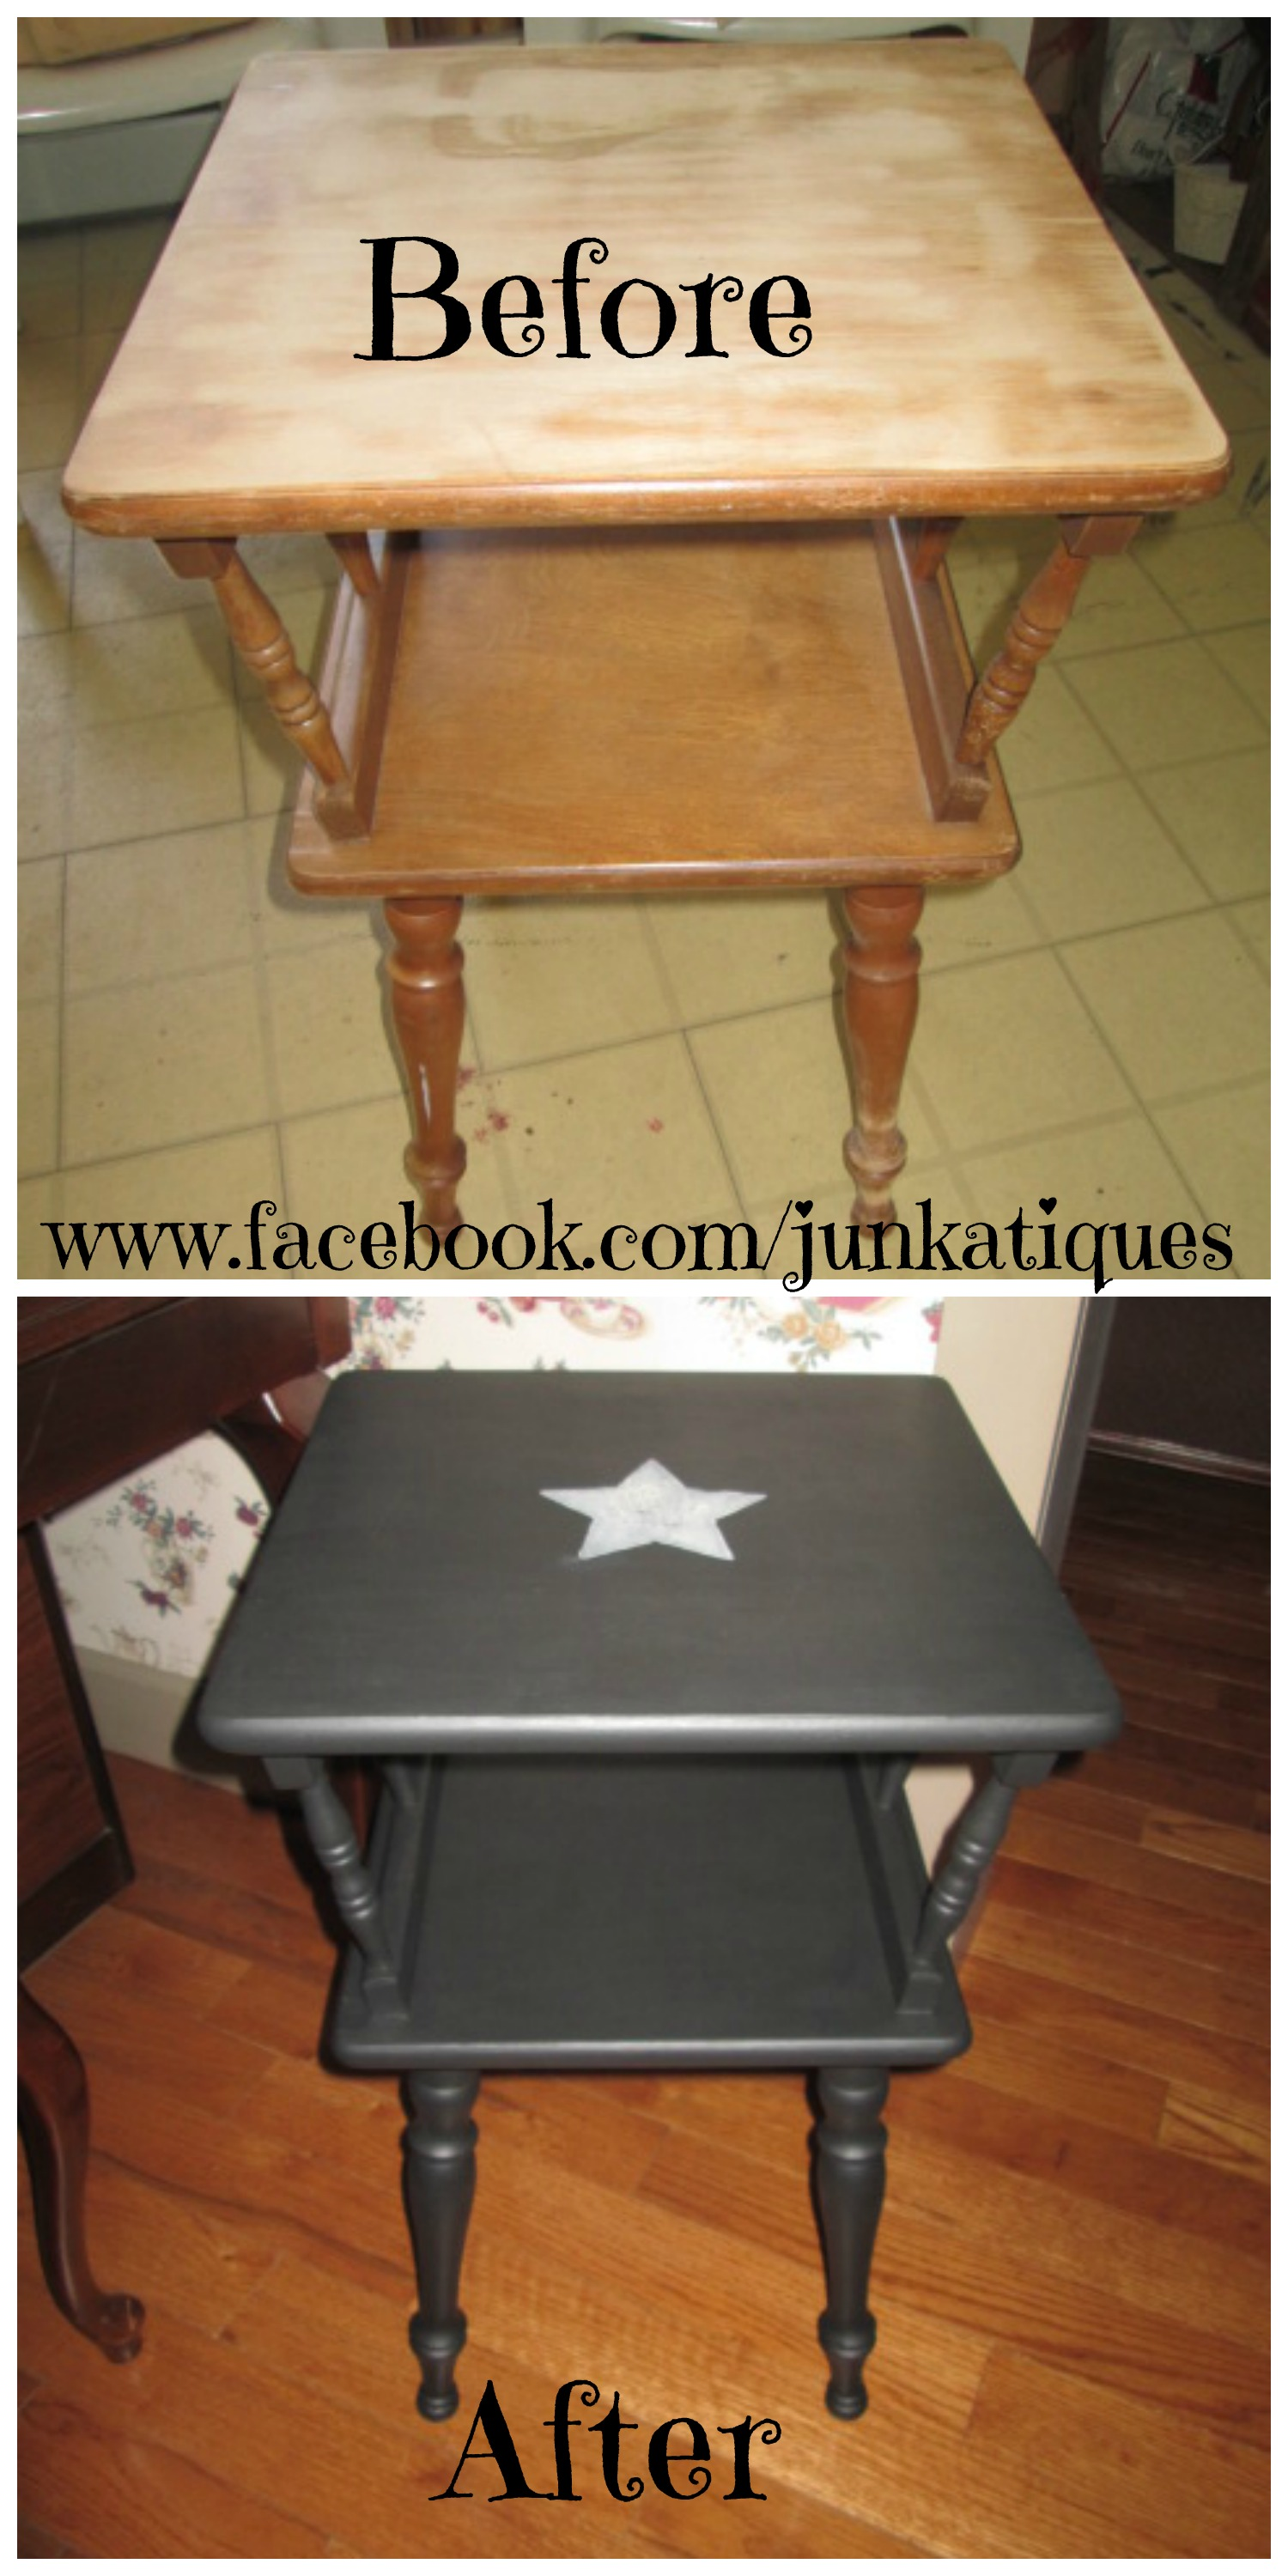 Delightful Primitive Upcycled End Table... Chalk Paint... Www.facebook.